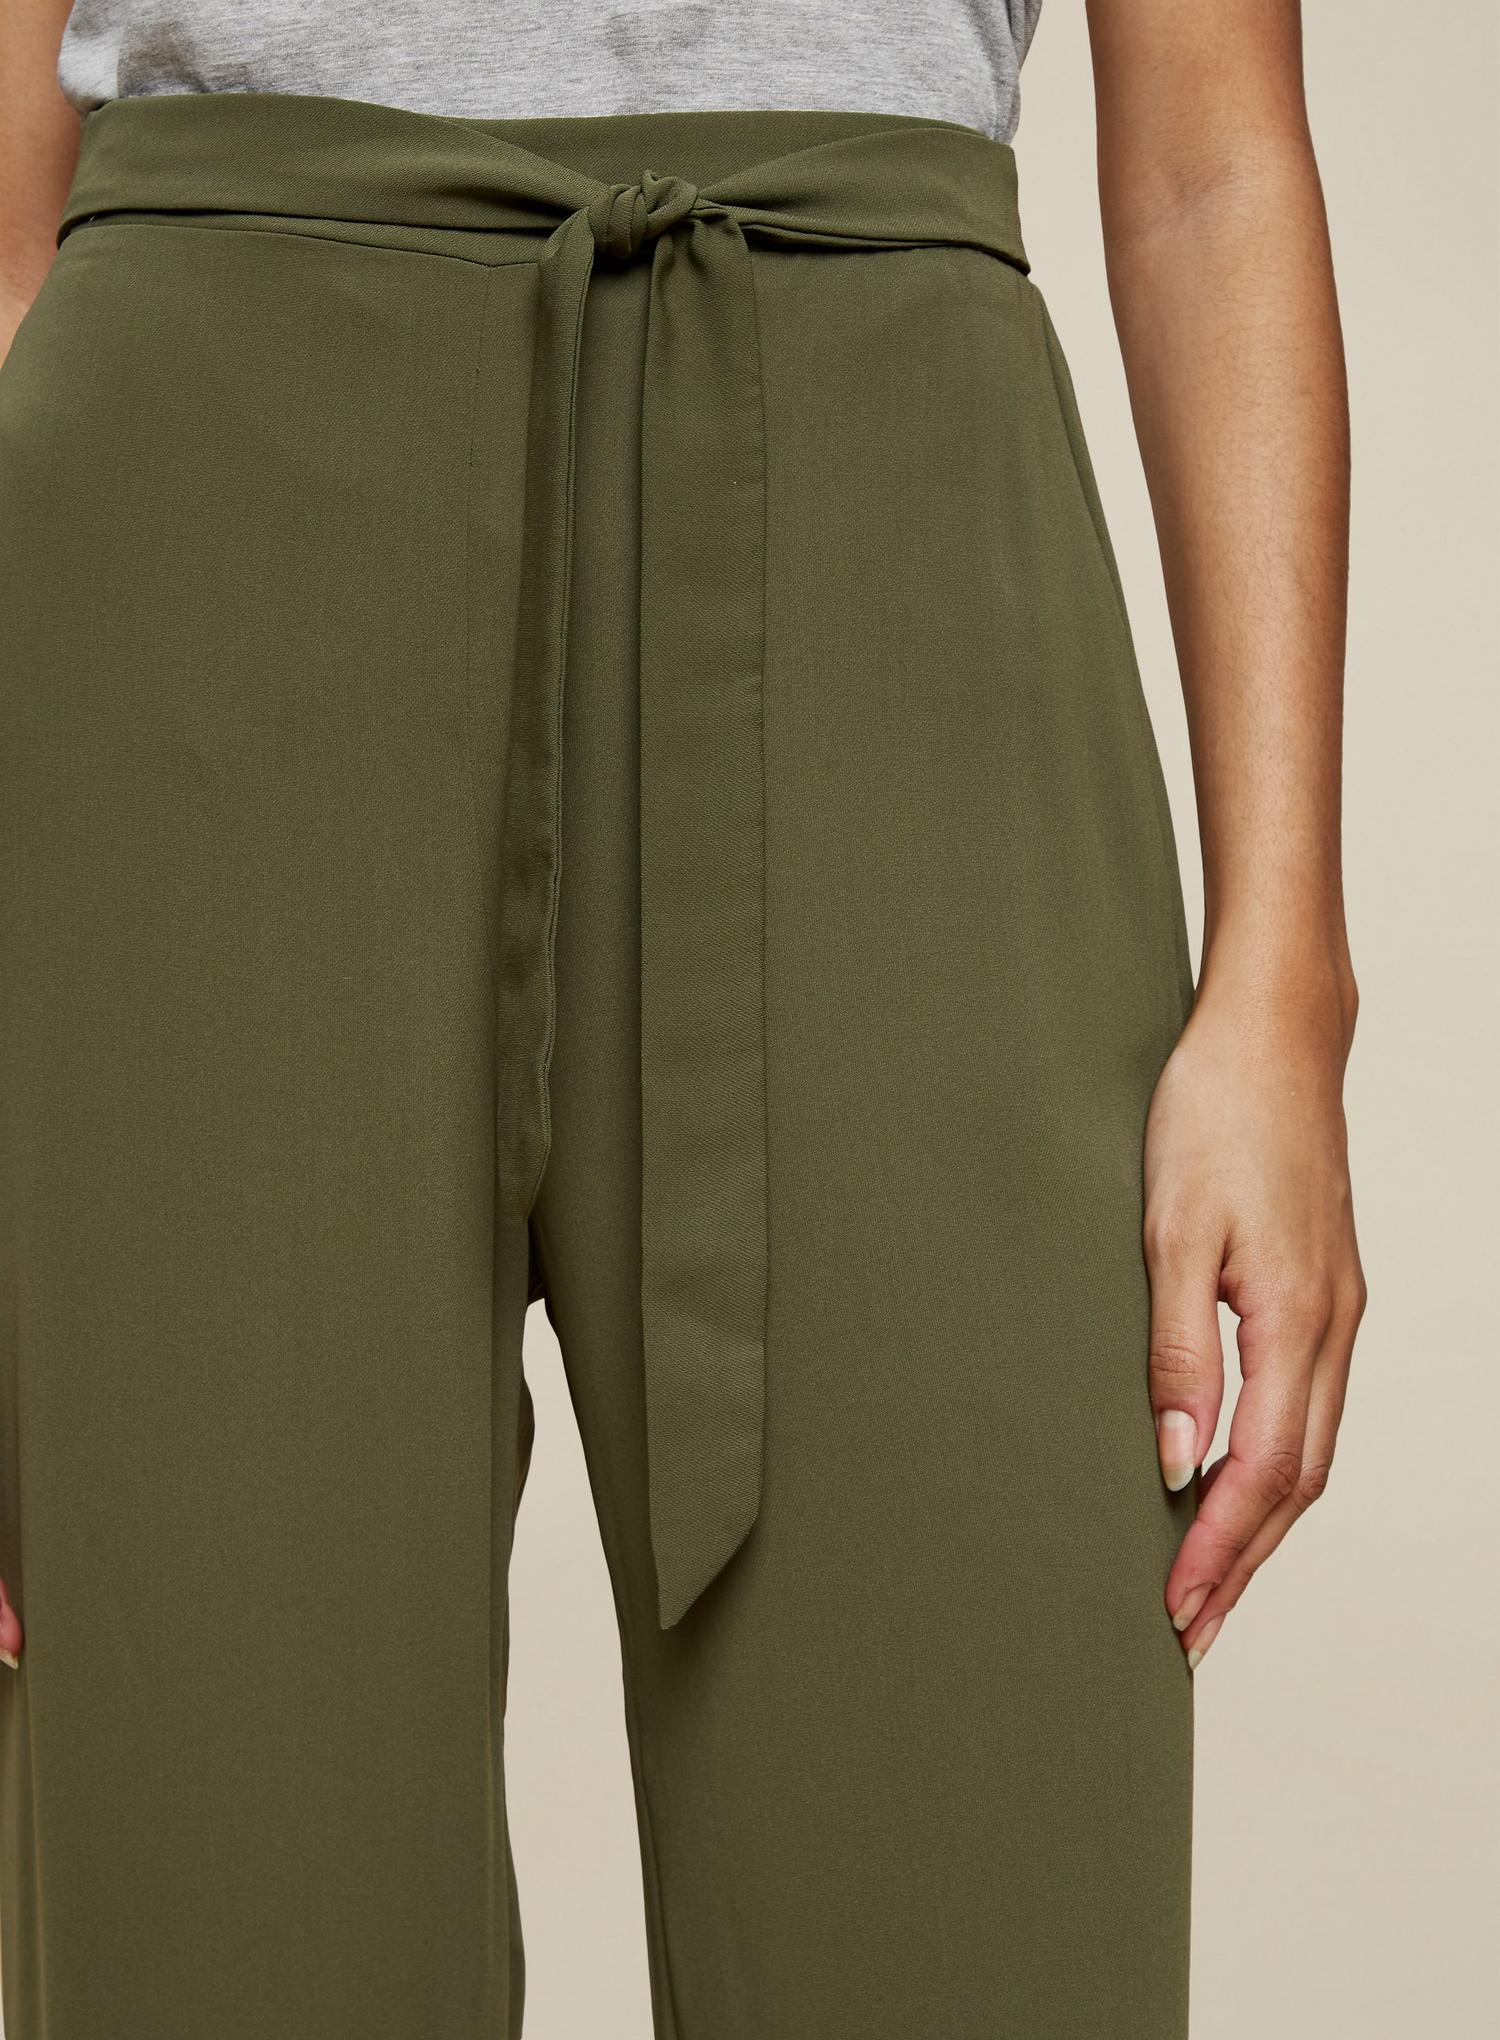 130 Tall Khaki Cropped Palazzo Trousers image number 3